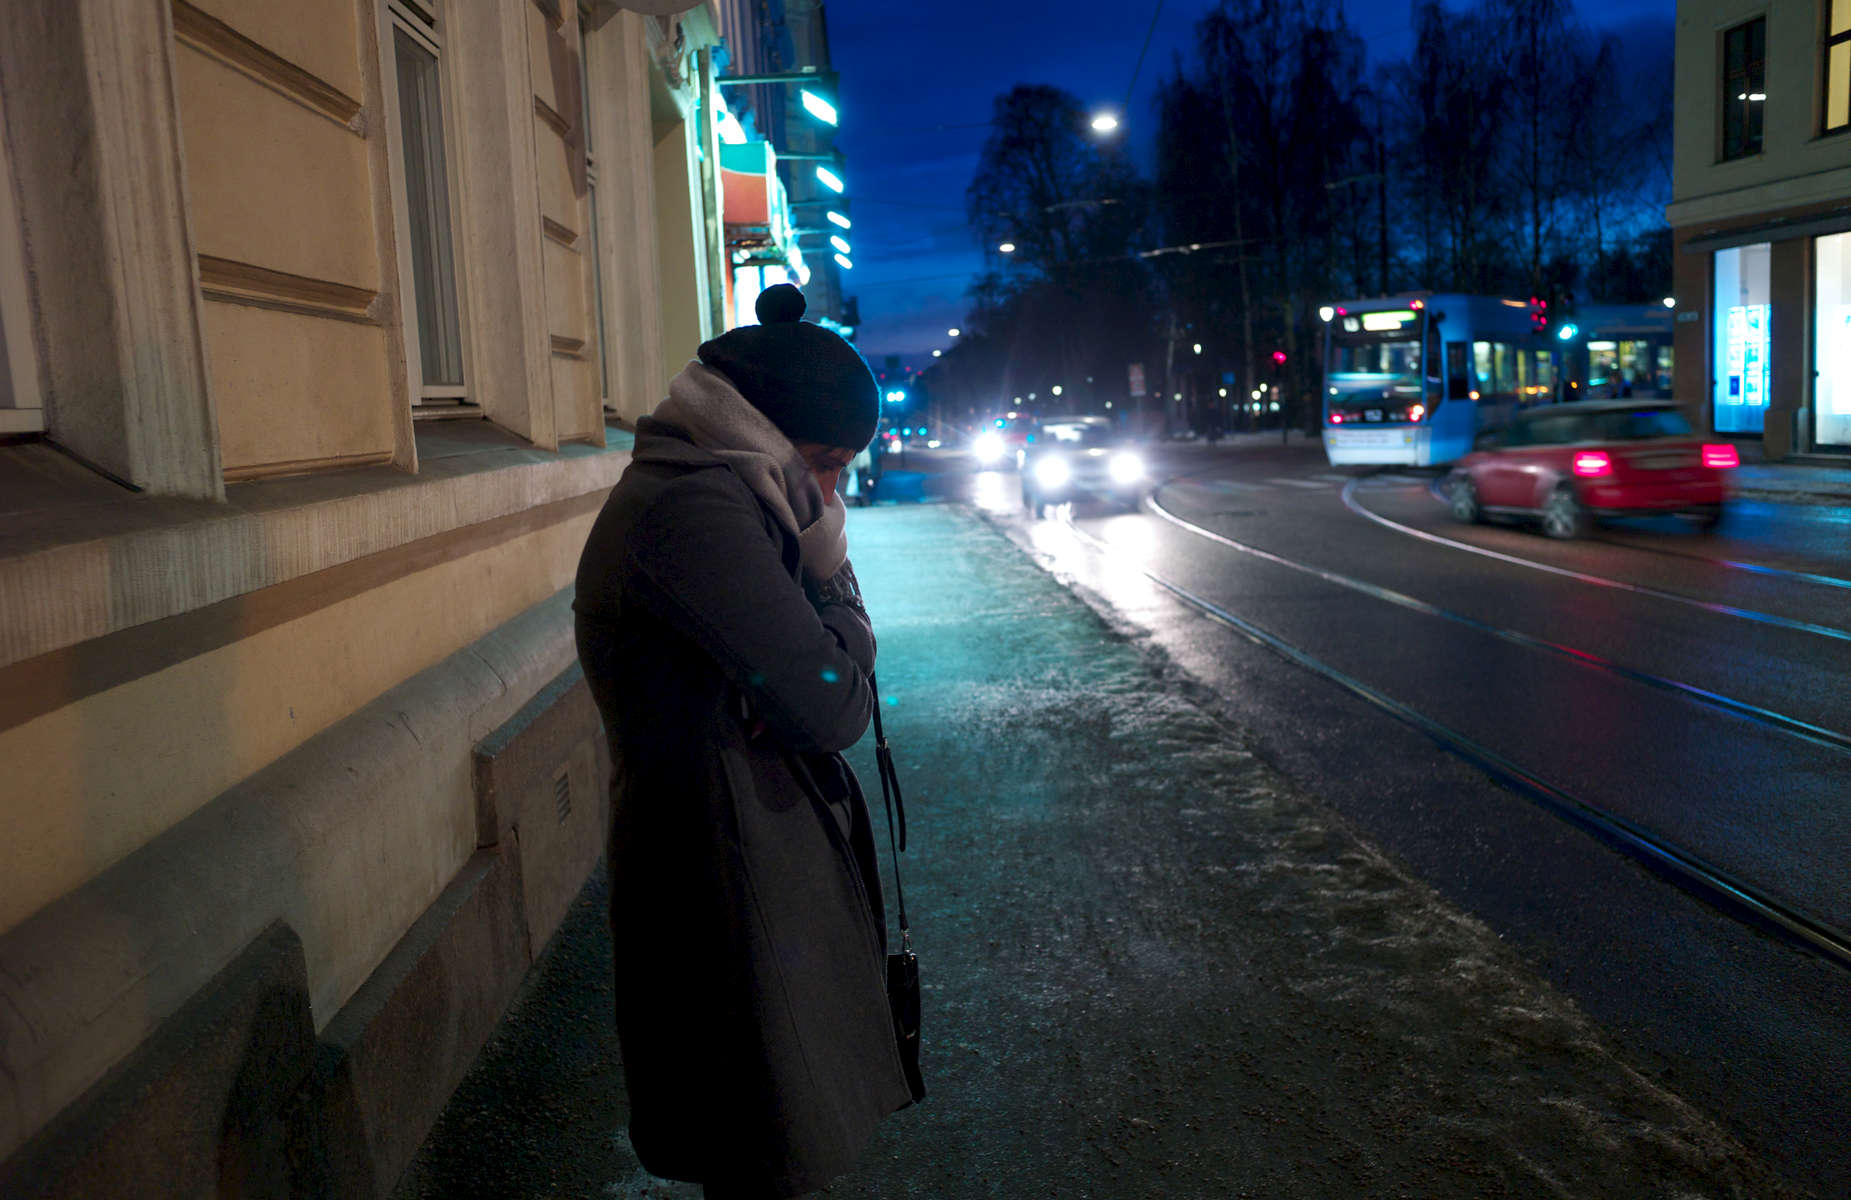 A rejected asylum seeker standing in the cold waits on an isolated street for a driver.